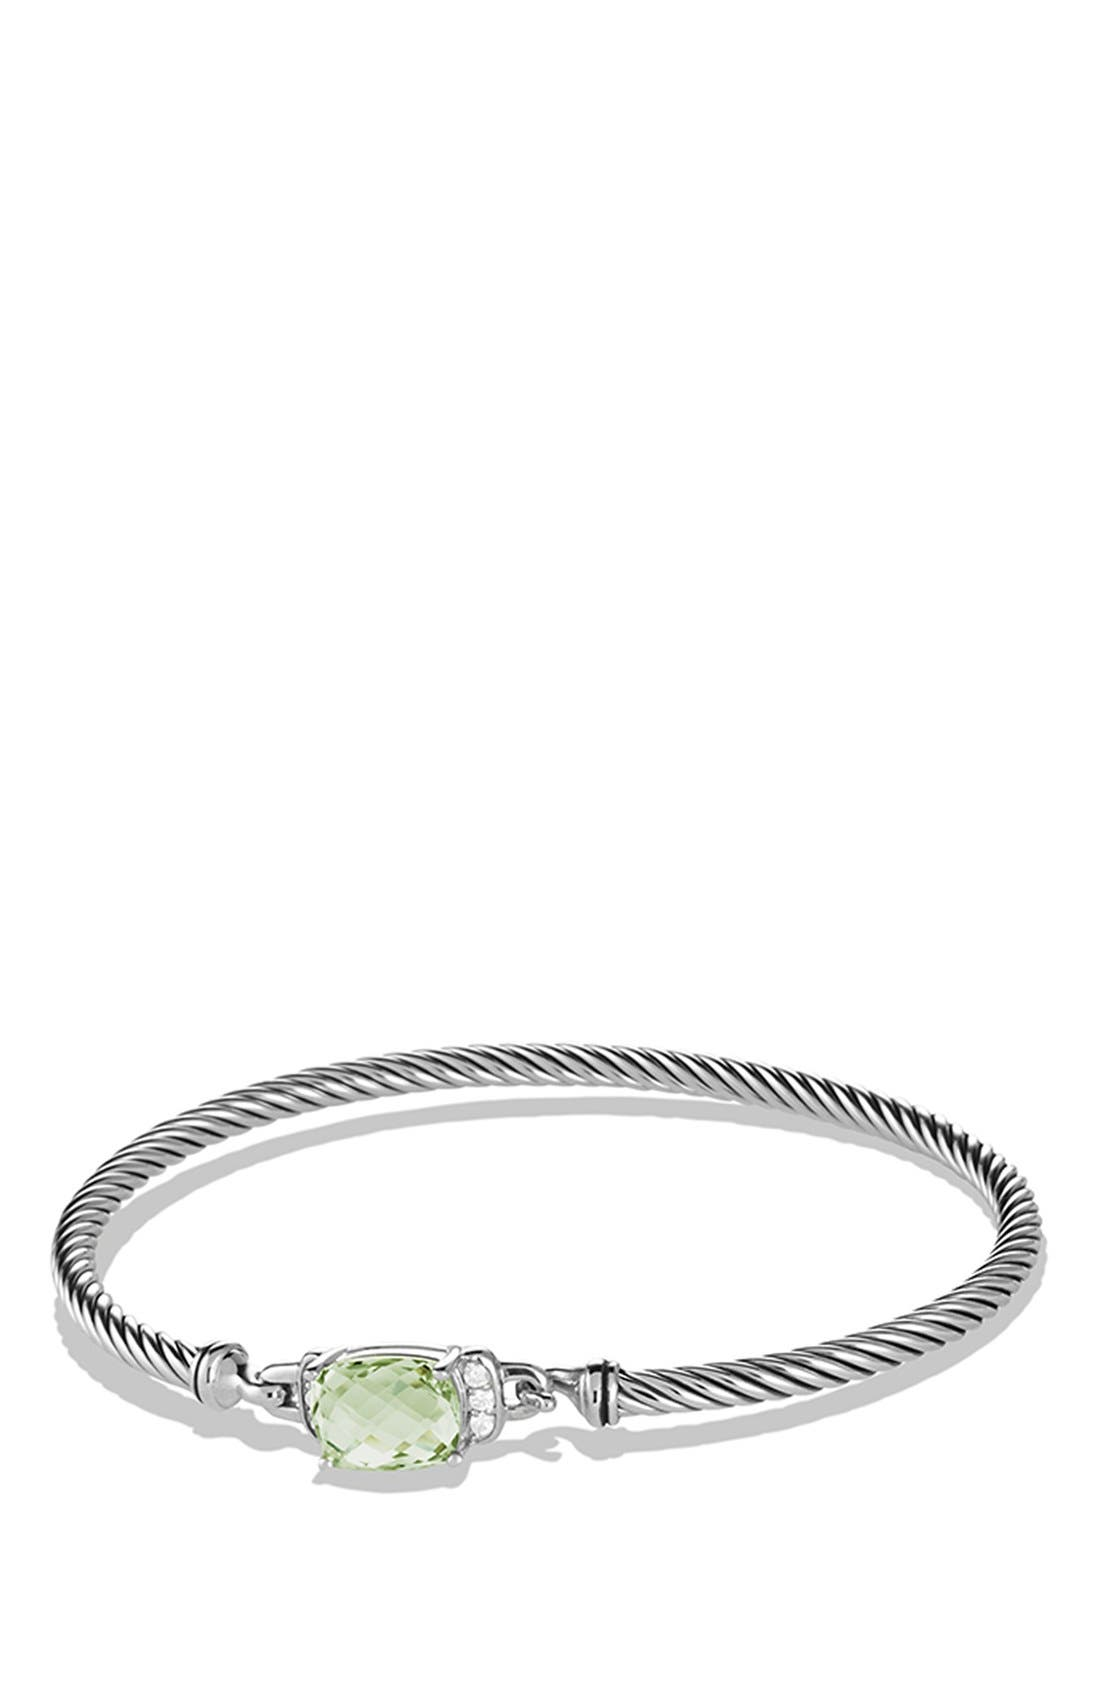 'Petite Wheaton' Bracelet with Semiprecious Stone & Diamonds,                         Main,                         color, PRASIOLITE